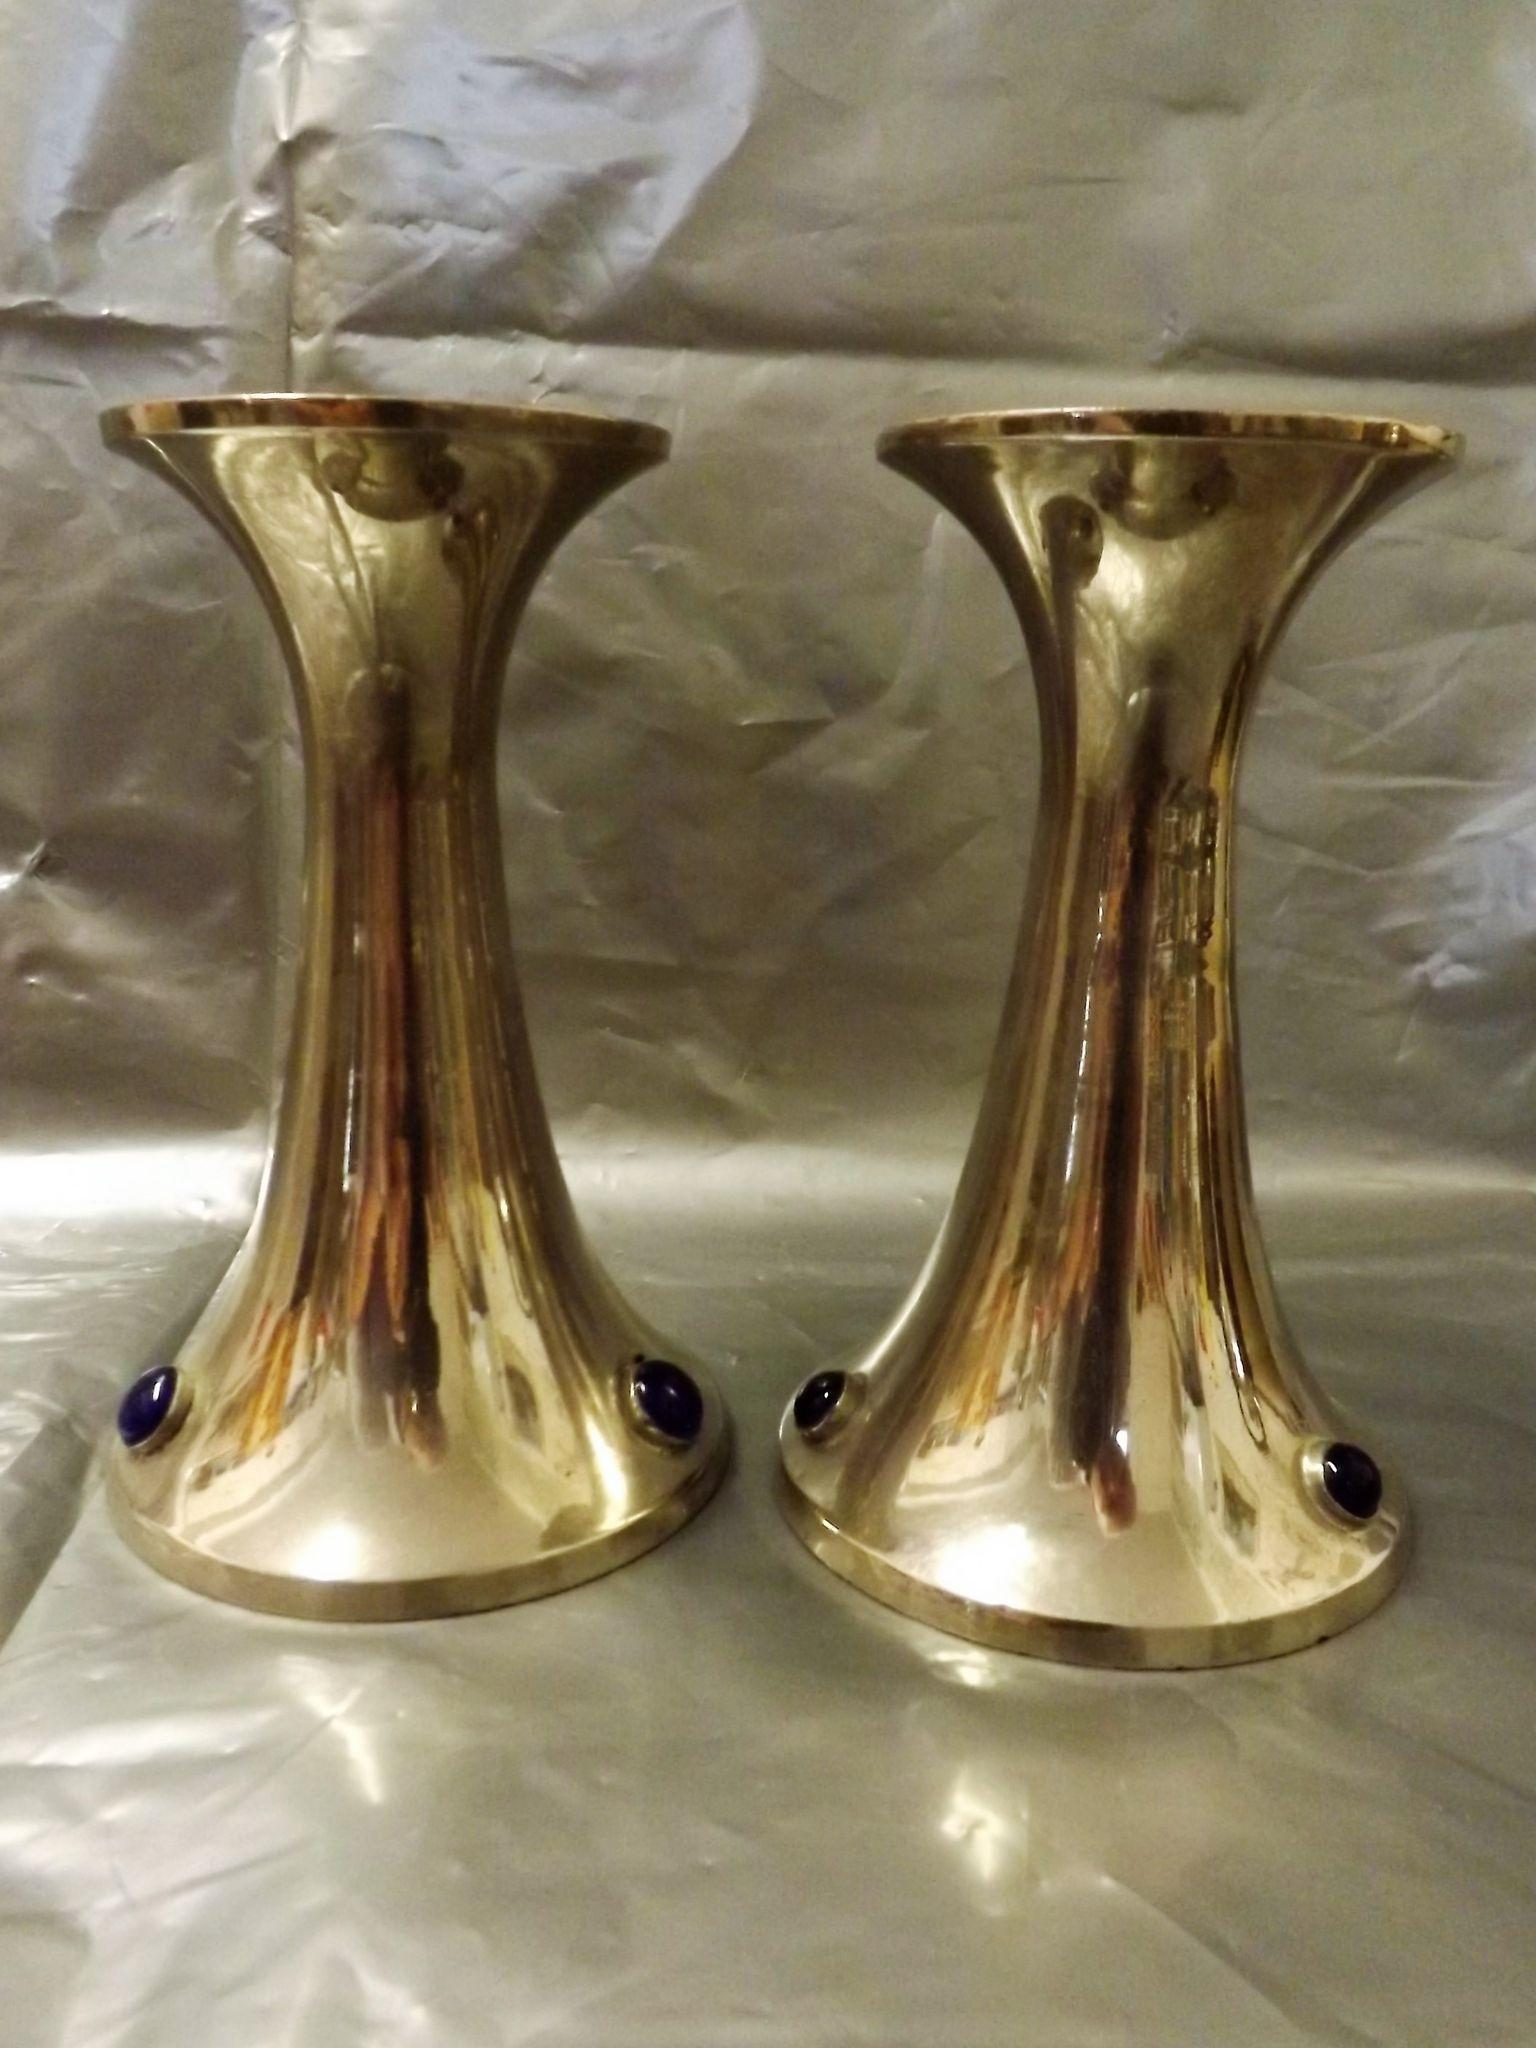 A Pair of Art Deco Chromed Candle Sticks with Cabochons - Circa 1930